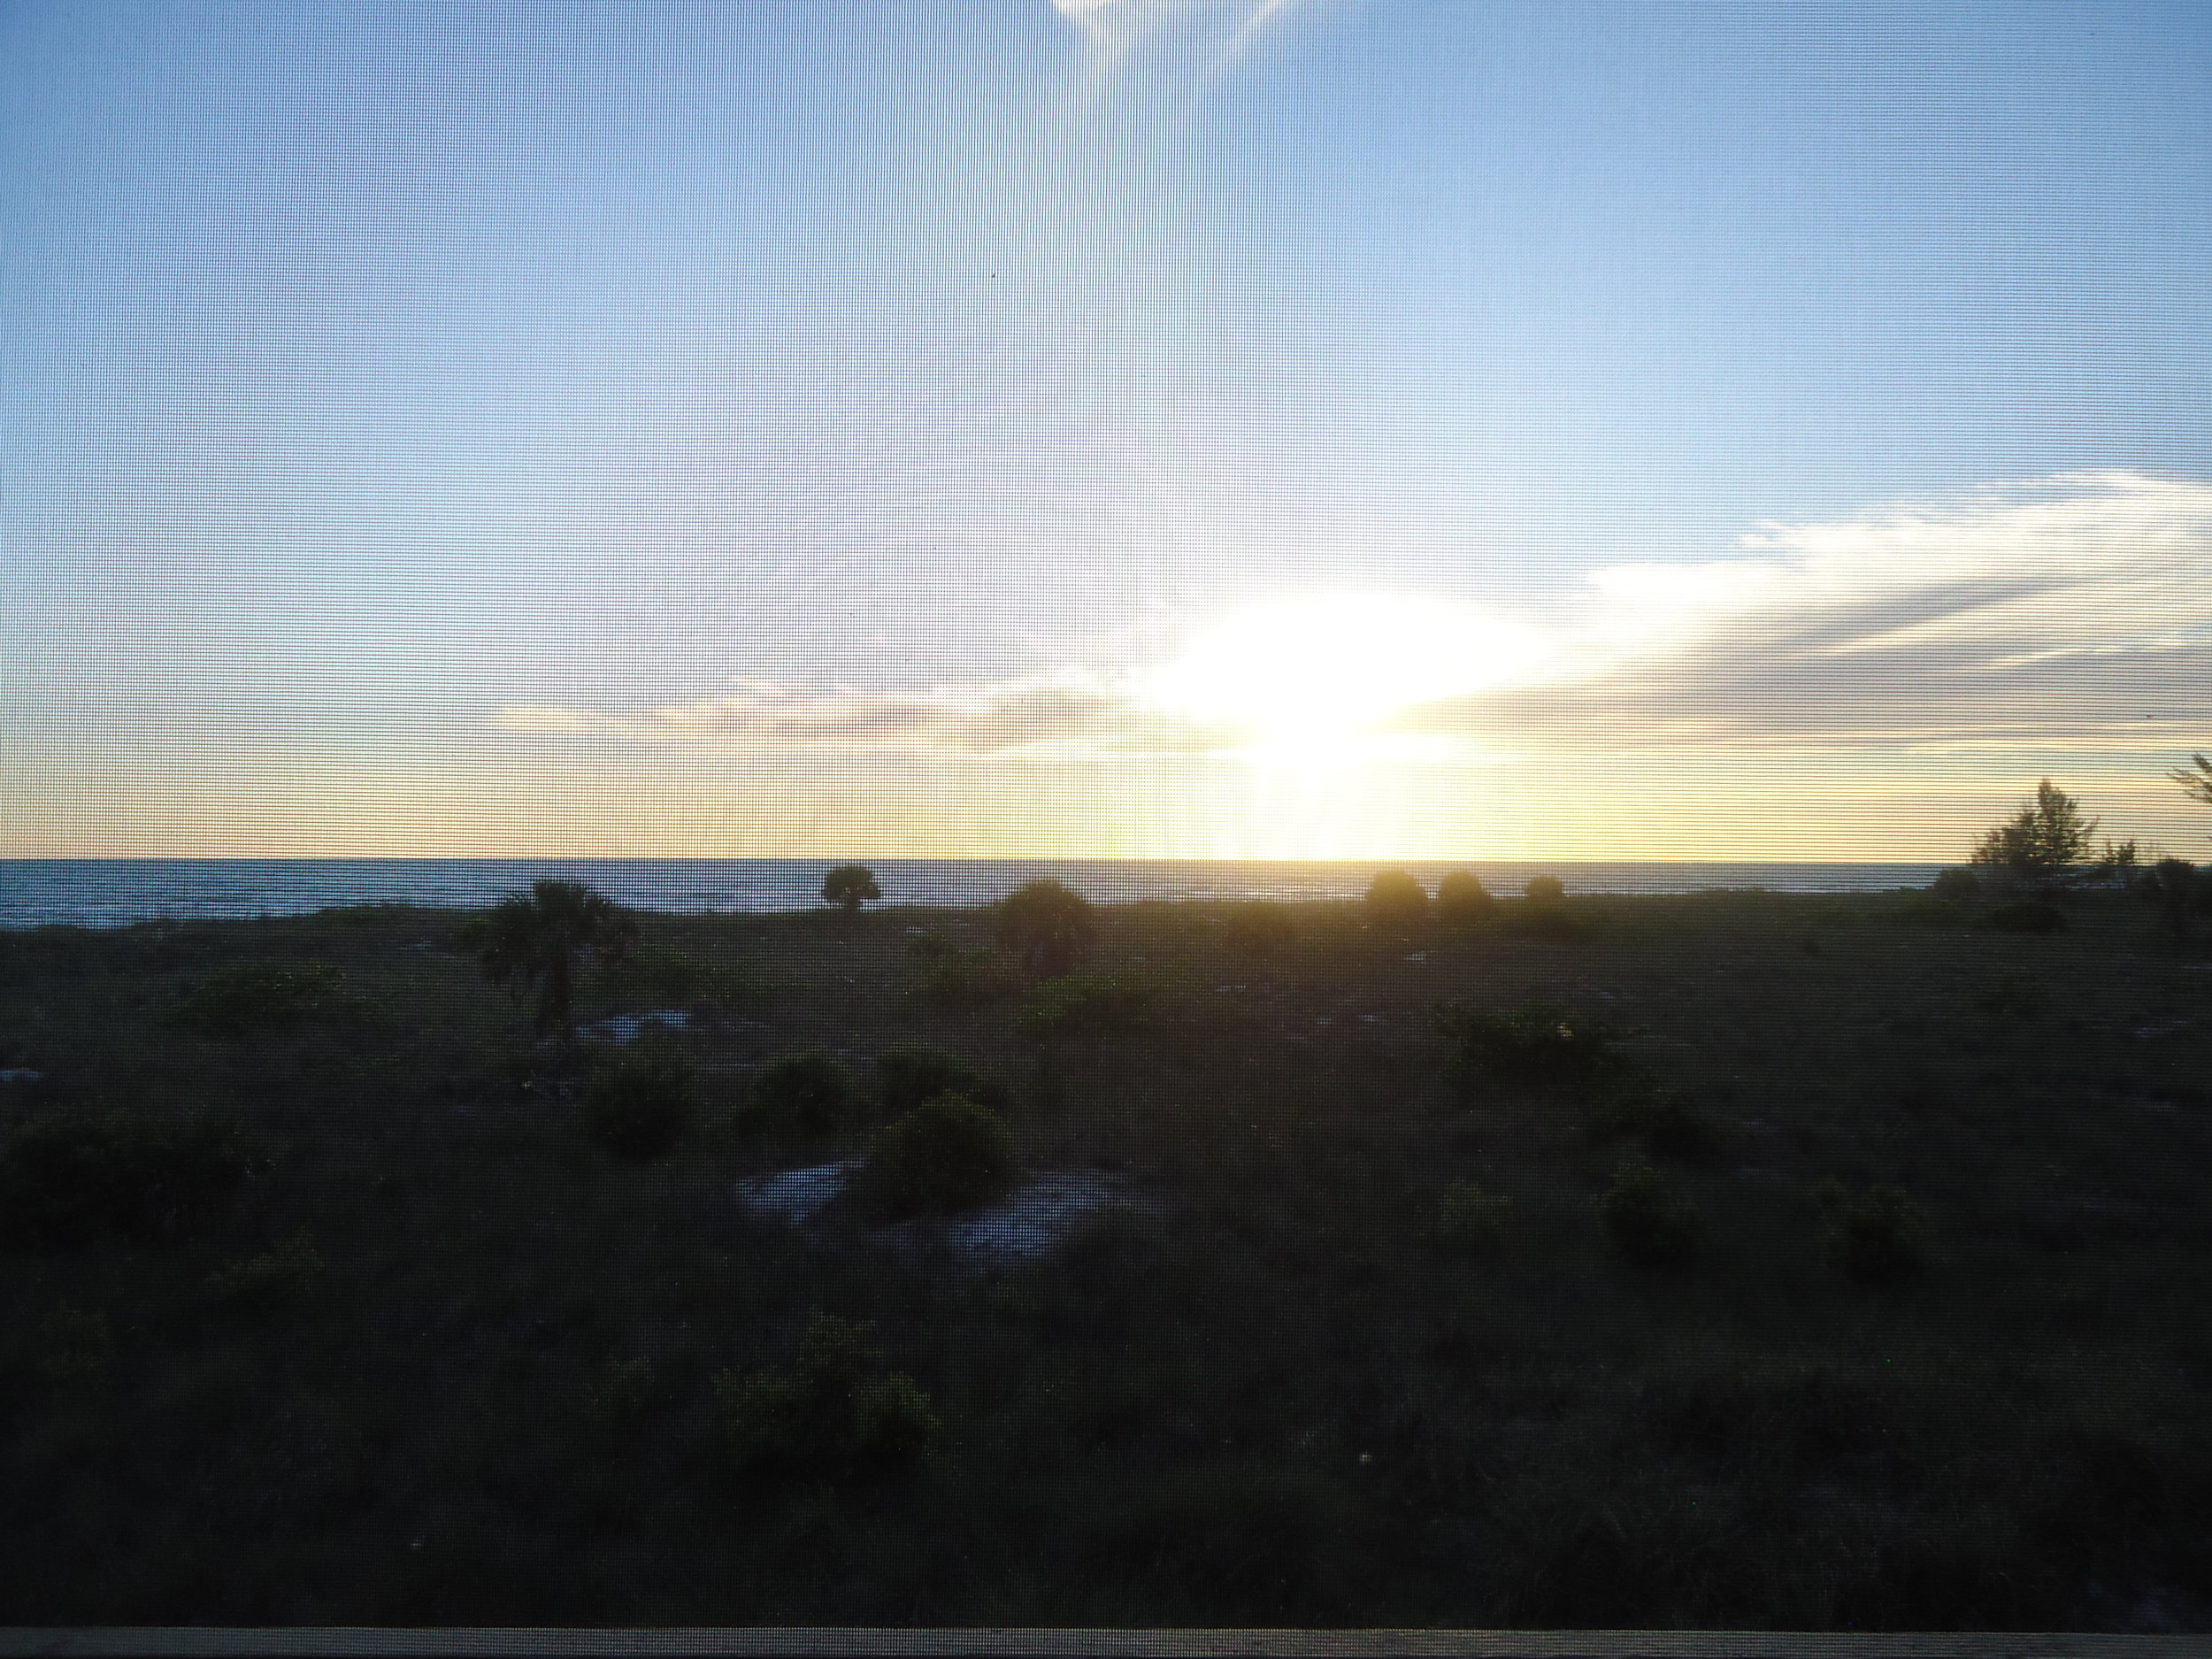 sunset view from balcony.jpg